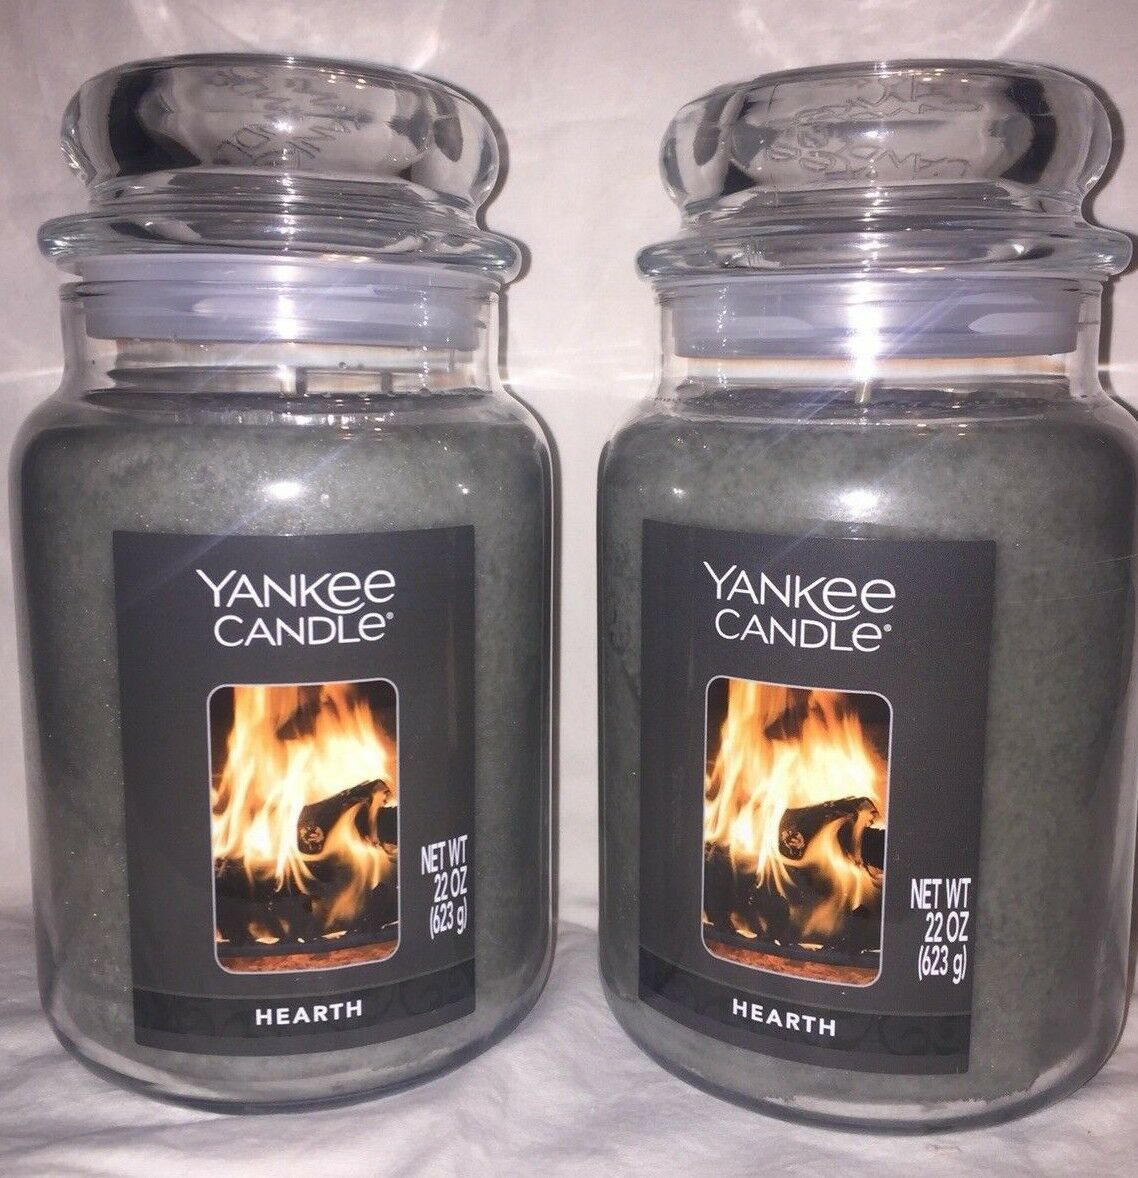 YANKEE CANDLE HEARTH 22 oz. New Label. Lot of Two, Hard to Find, Free Shipping